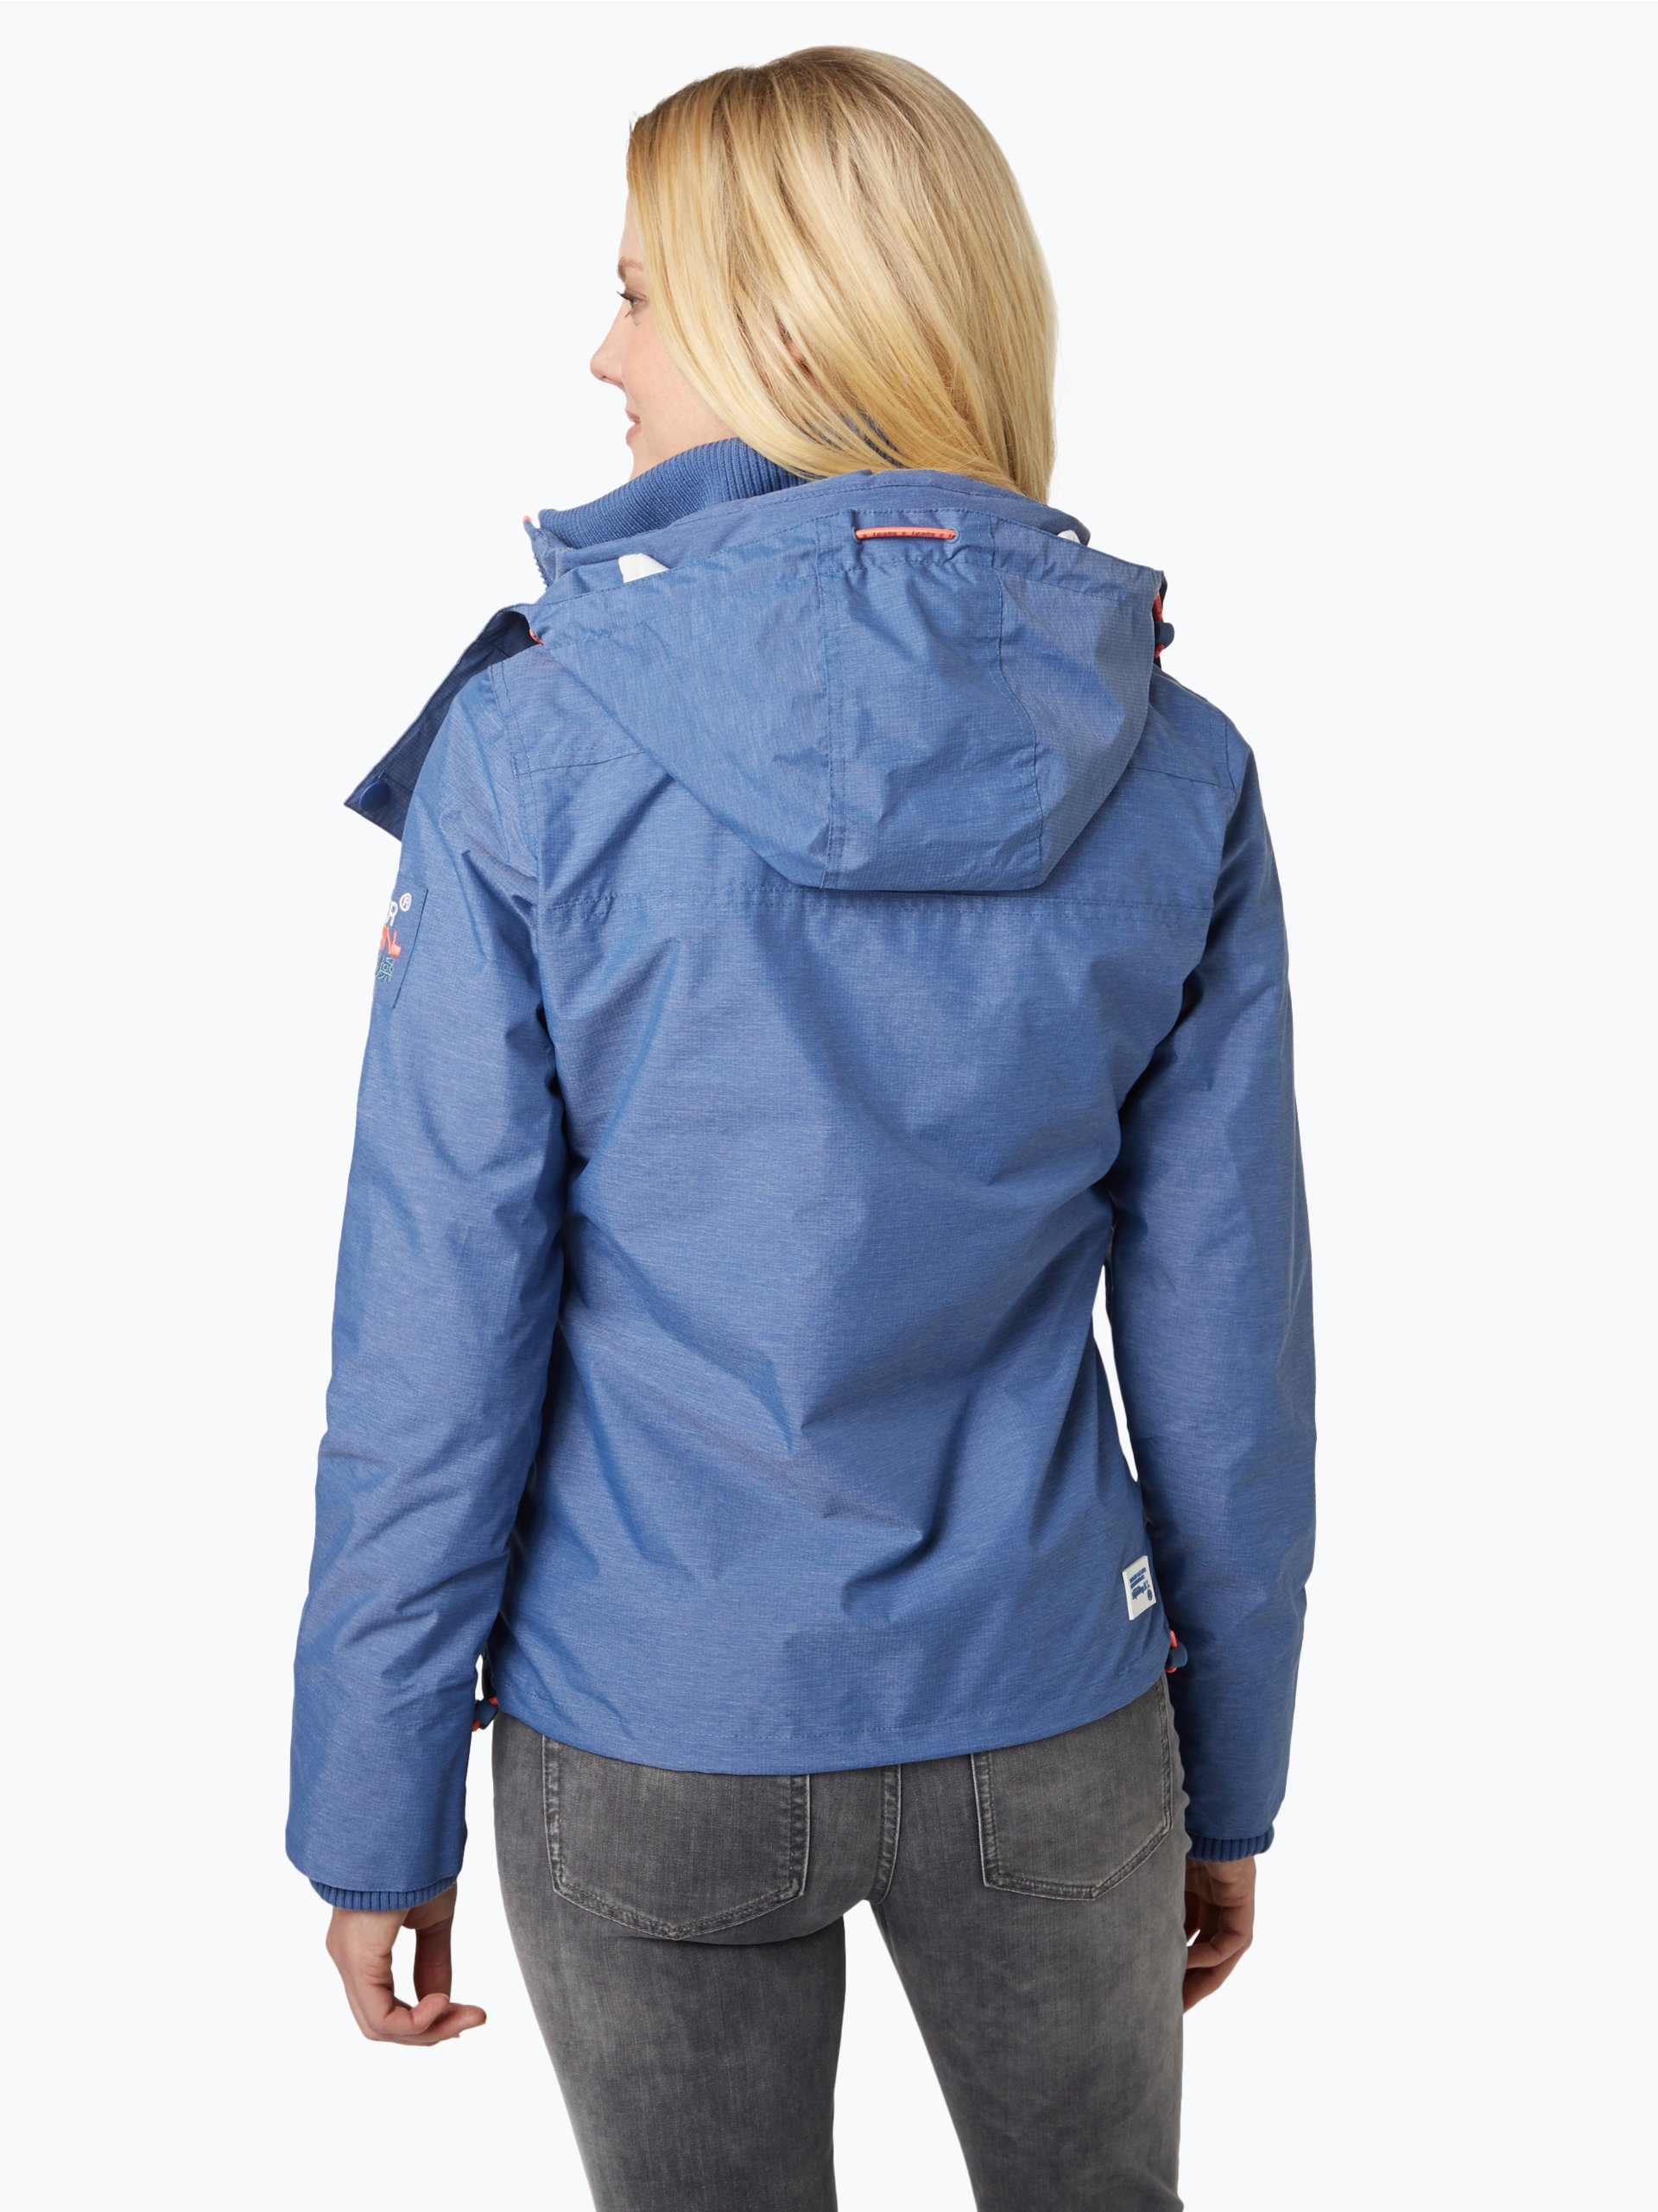 superdry damen jacke wind yachter blau uni online kaufen. Black Bedroom Furniture Sets. Home Design Ideas